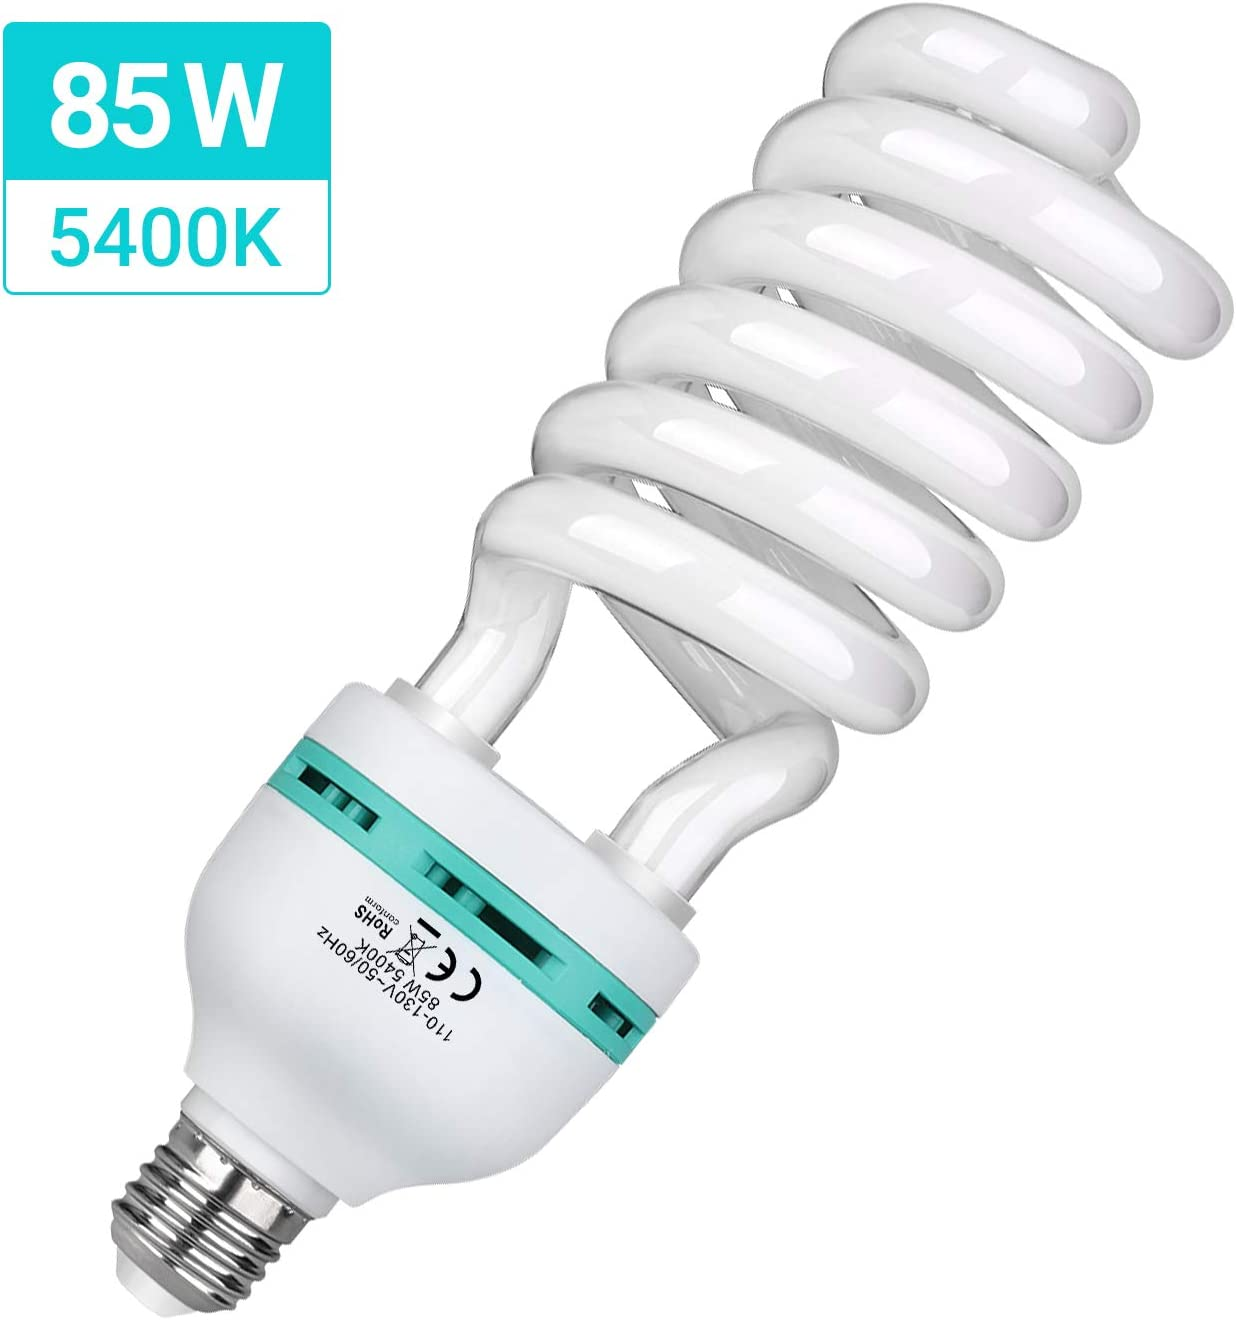 Lighting Studio Ideal for Photography and Video HPUSN 85W 110V 5400K Compact Fluorescent CFL Balanced Daylight Bulb with E27 Mount